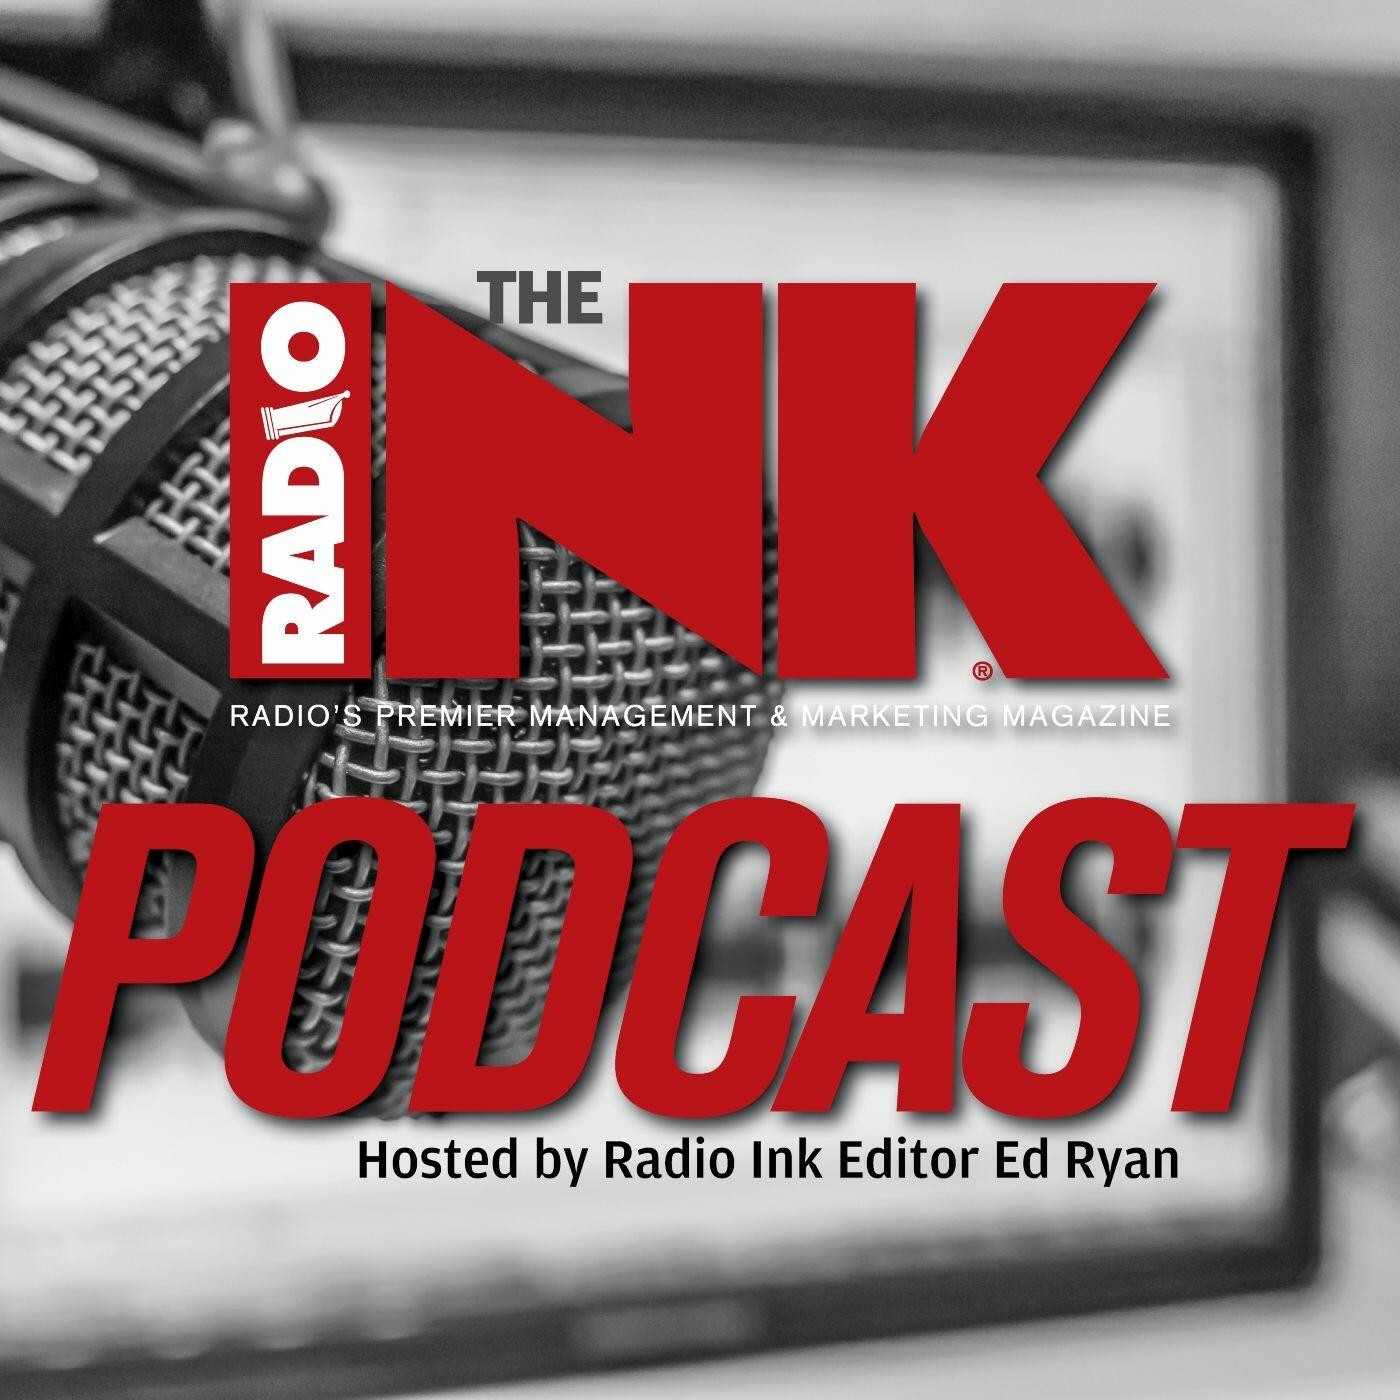 The Radio Ink Podcast